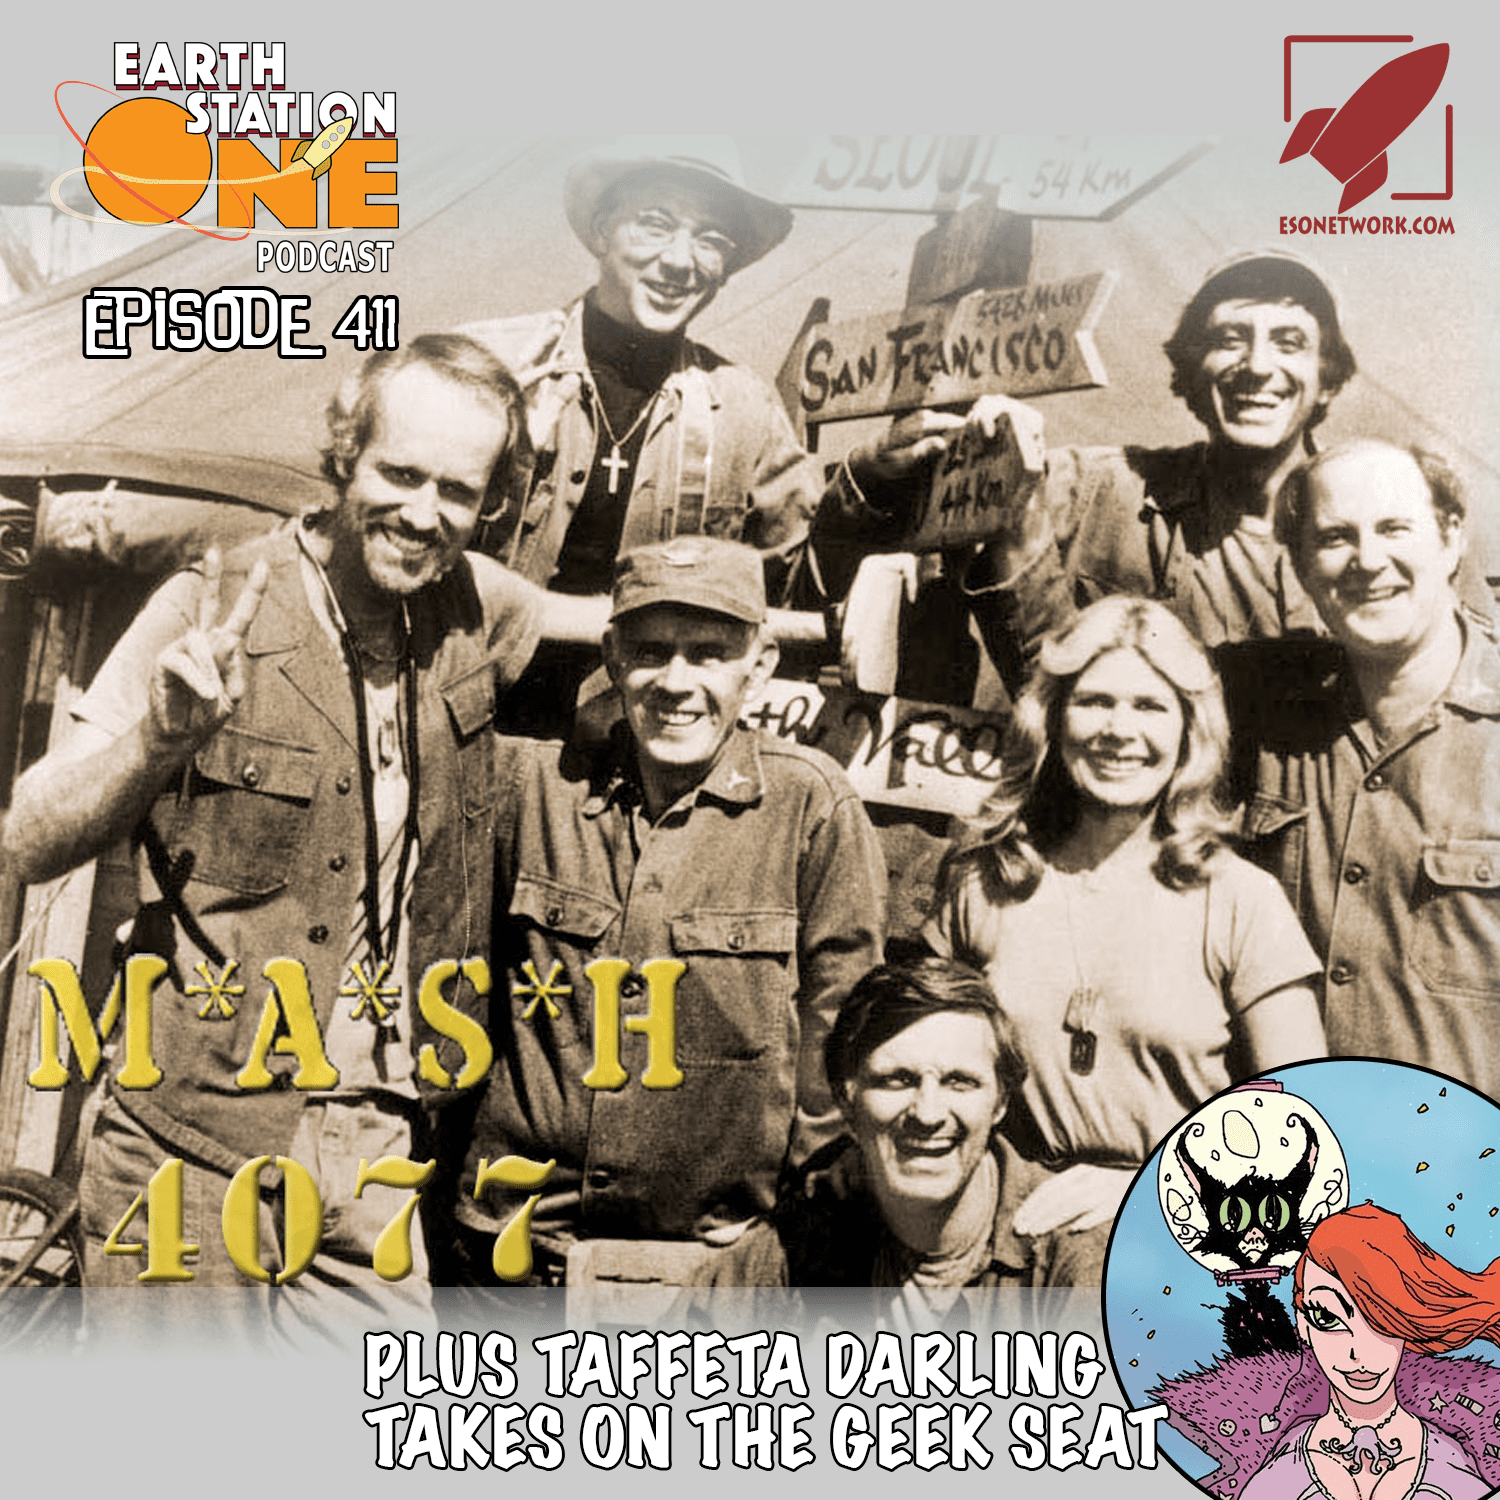 The Earth Station One Podcast Ep 411 - MASH